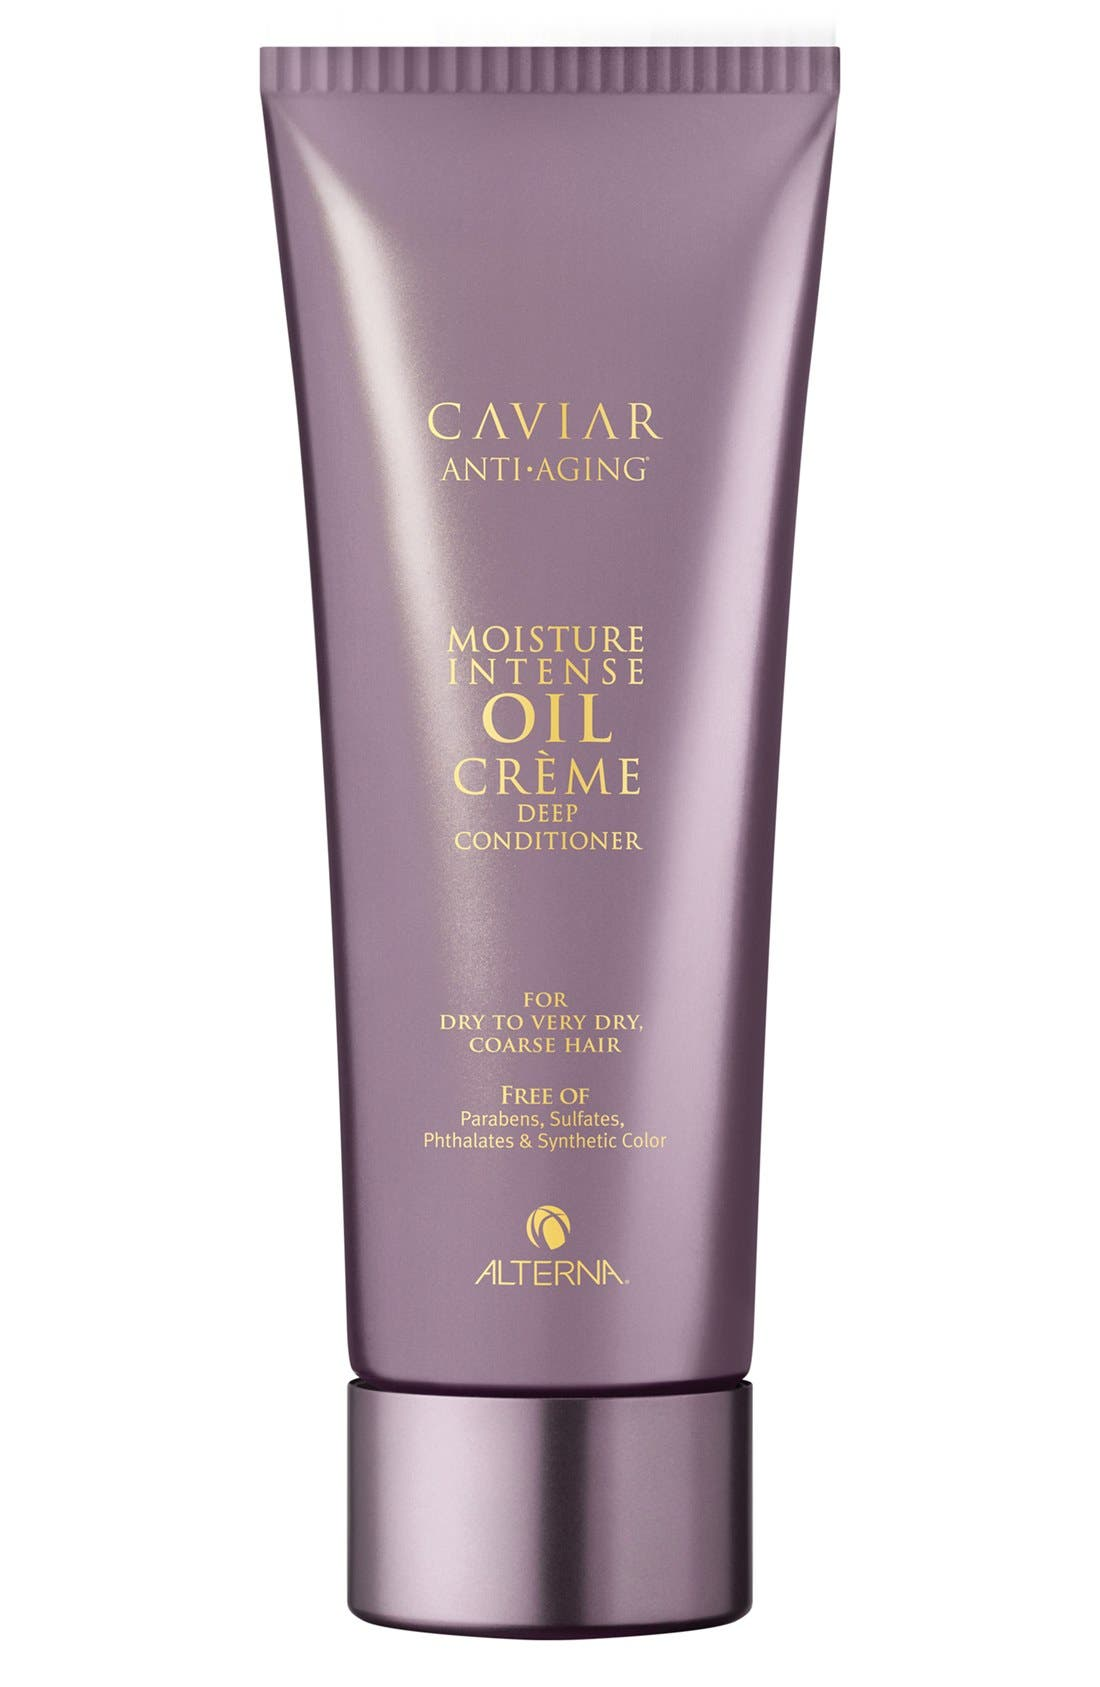 ALTERNA® Caviar Anti-Aging Moisture Intense Oil Creme Deep Conditioner